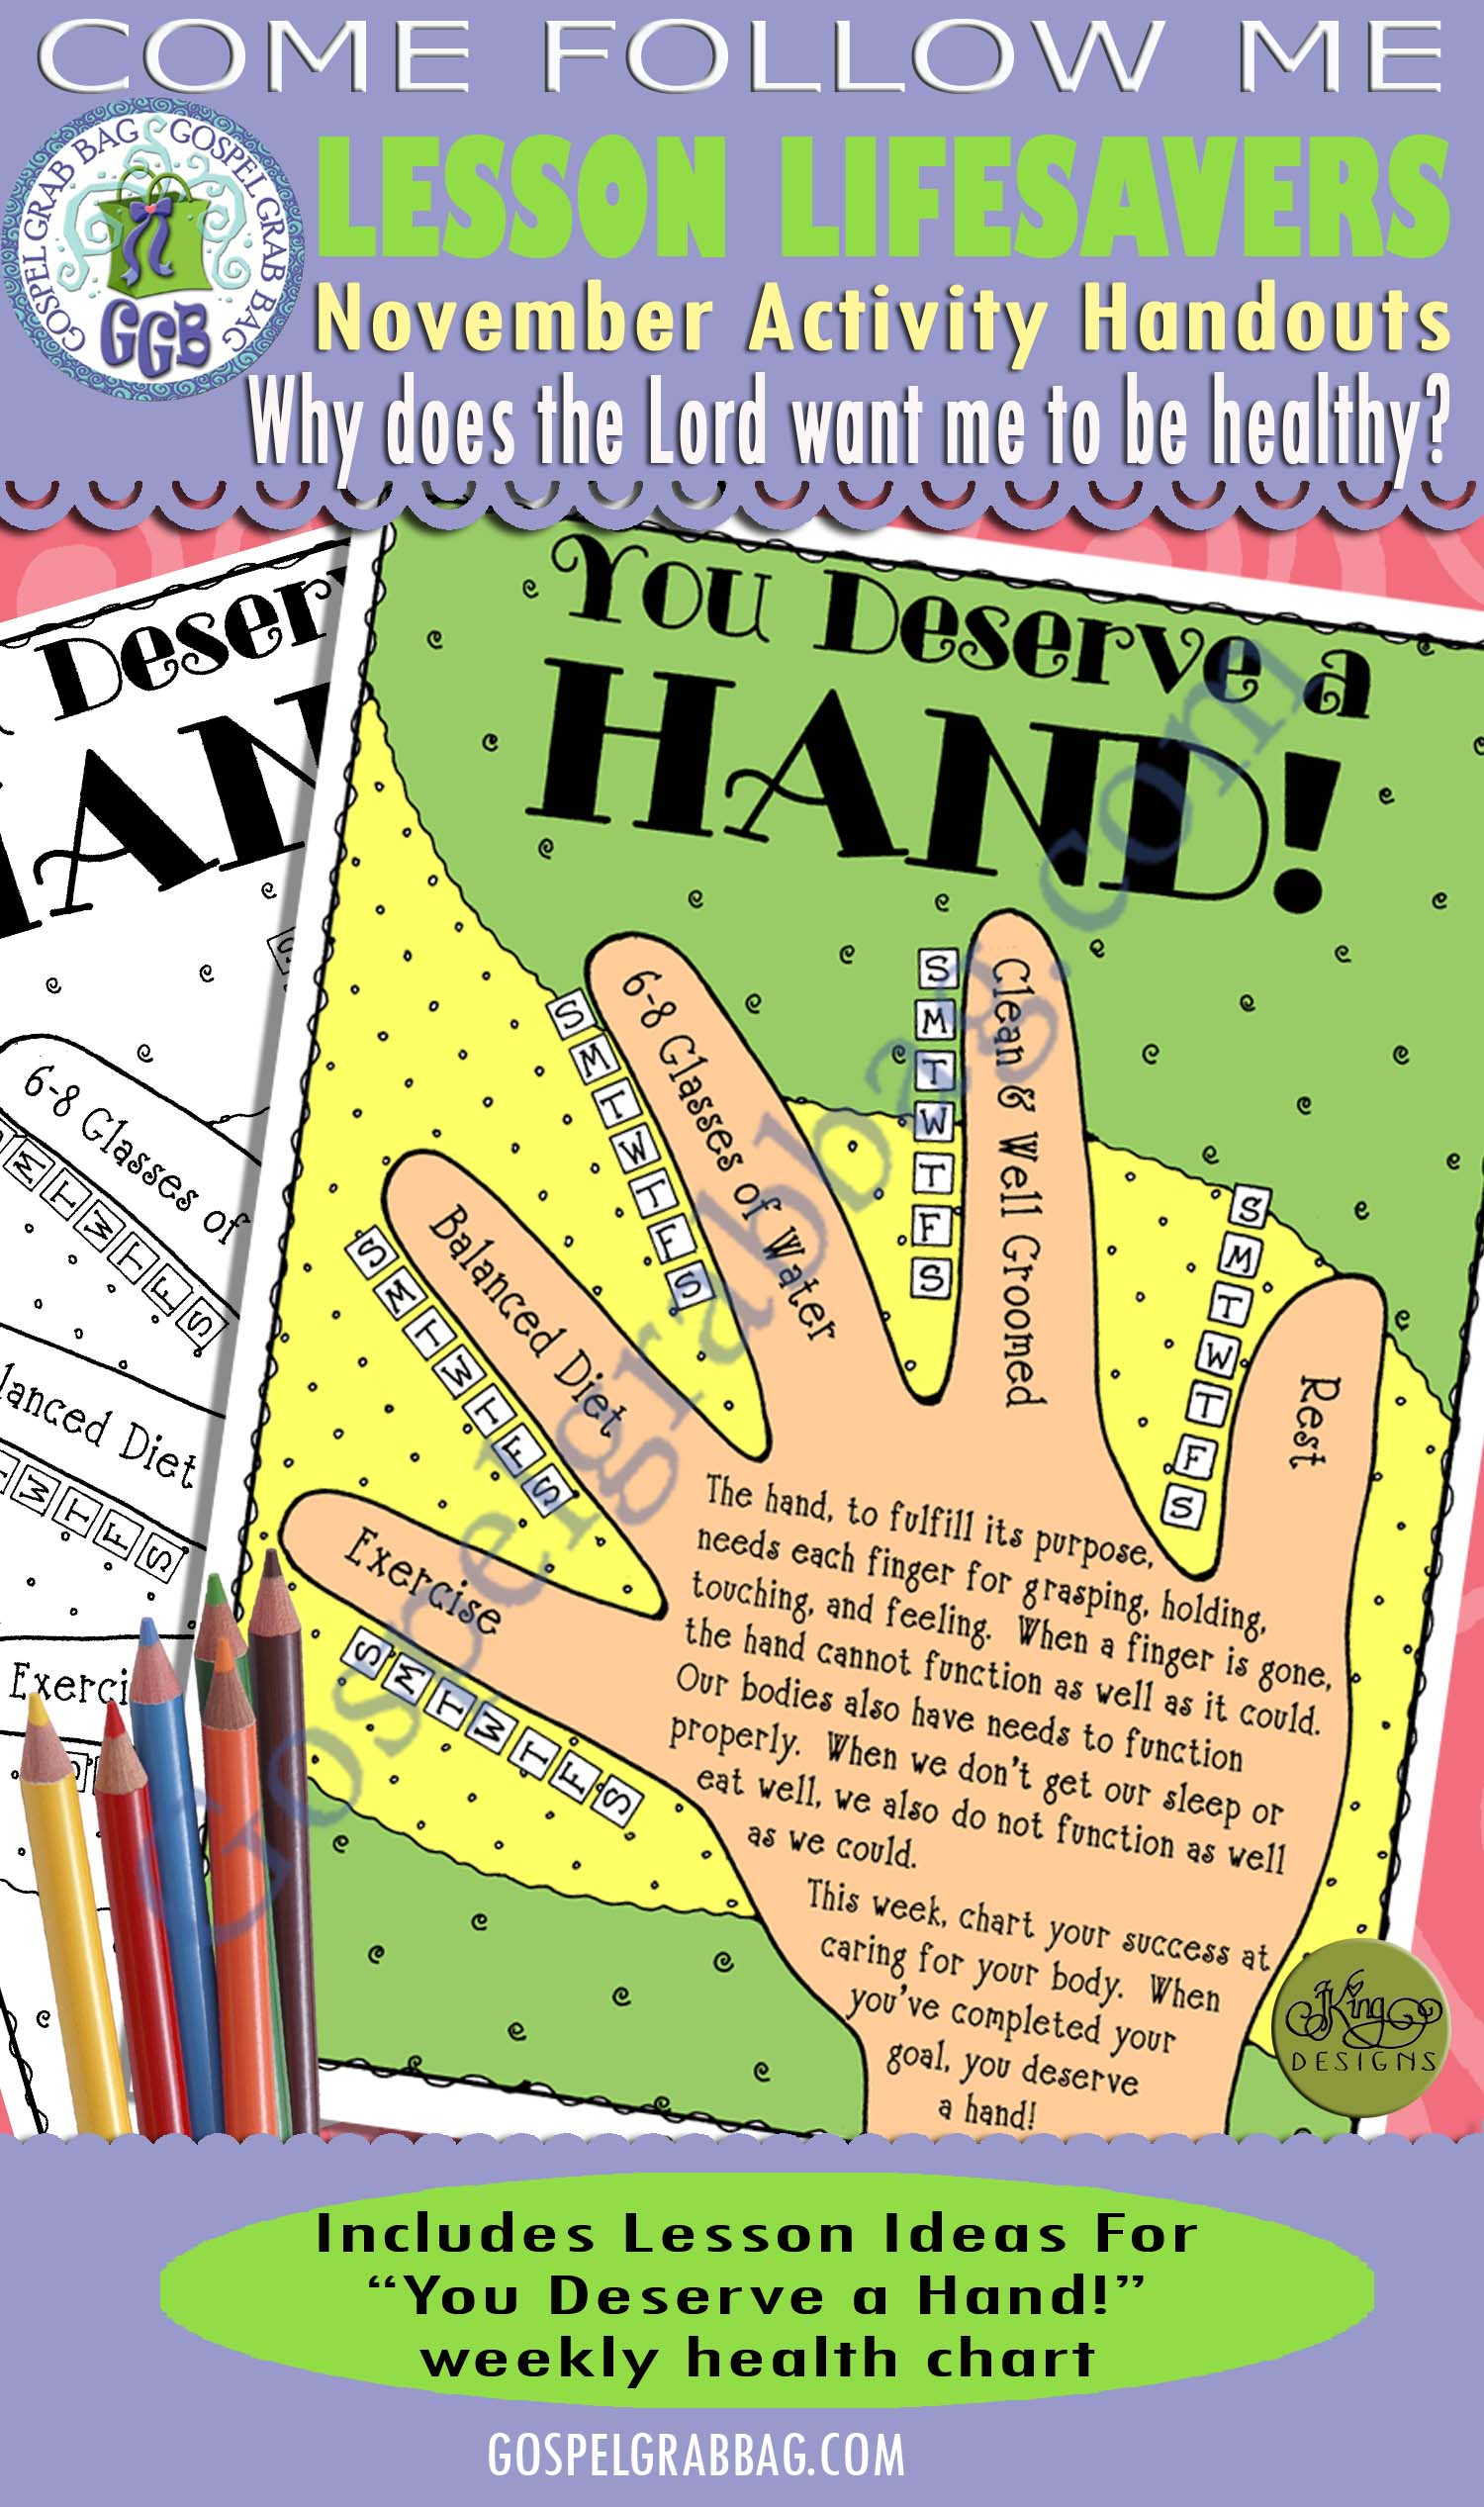 "$4.00 November Lesson 5 - Come Follow Me ""Why does the Lord want me to be healthy?"" ACTIVITY: You Deserve a Hand! health chart"